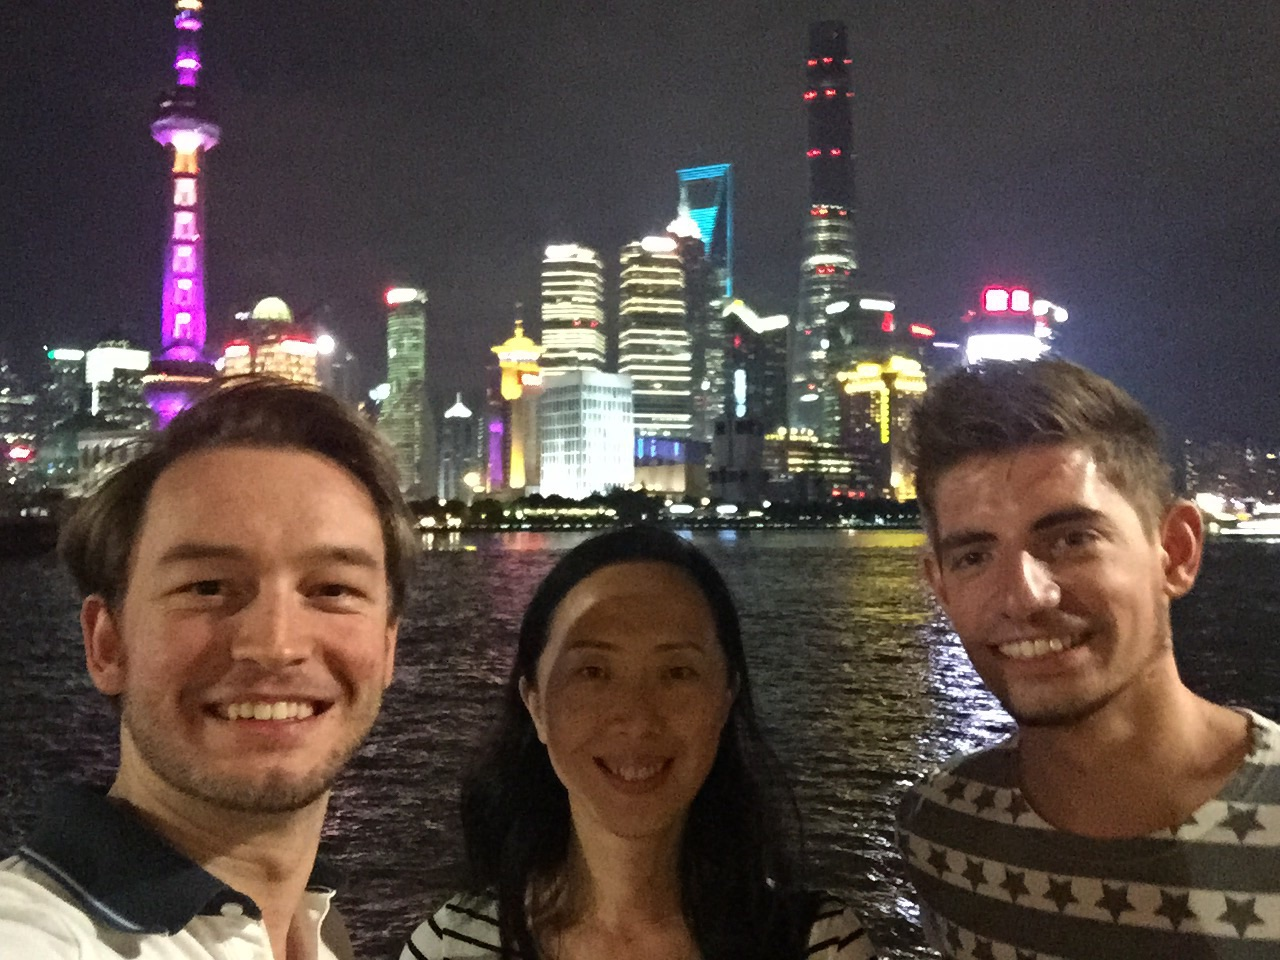 Placement Year International - interns and staff relaxing on the Bund in Shanghai, China